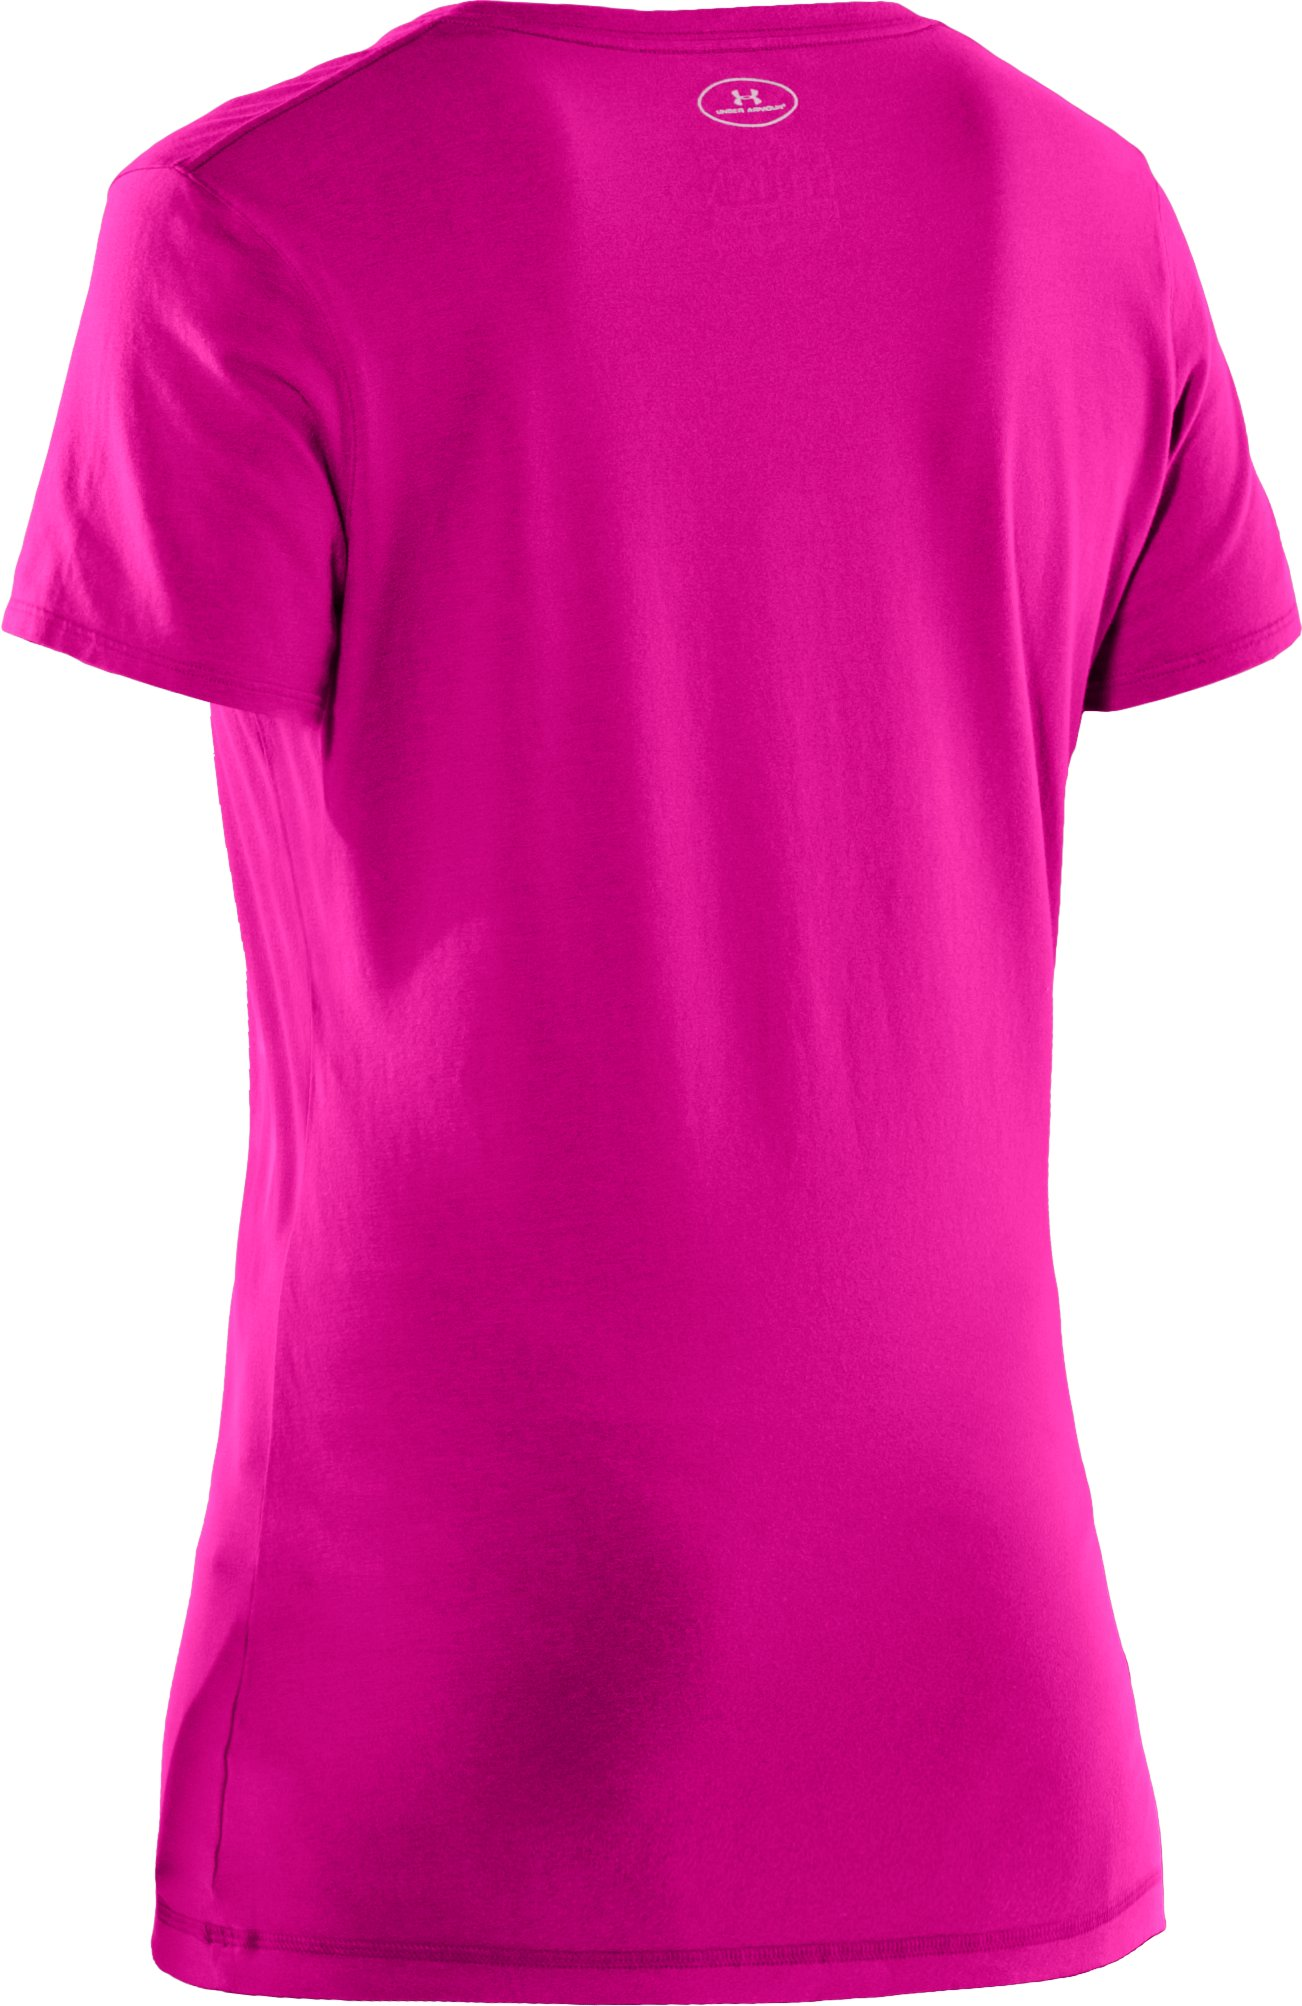 Women's Charged Cotton® Sassy Scoop T-Shirt, Tropic Pink, undefined